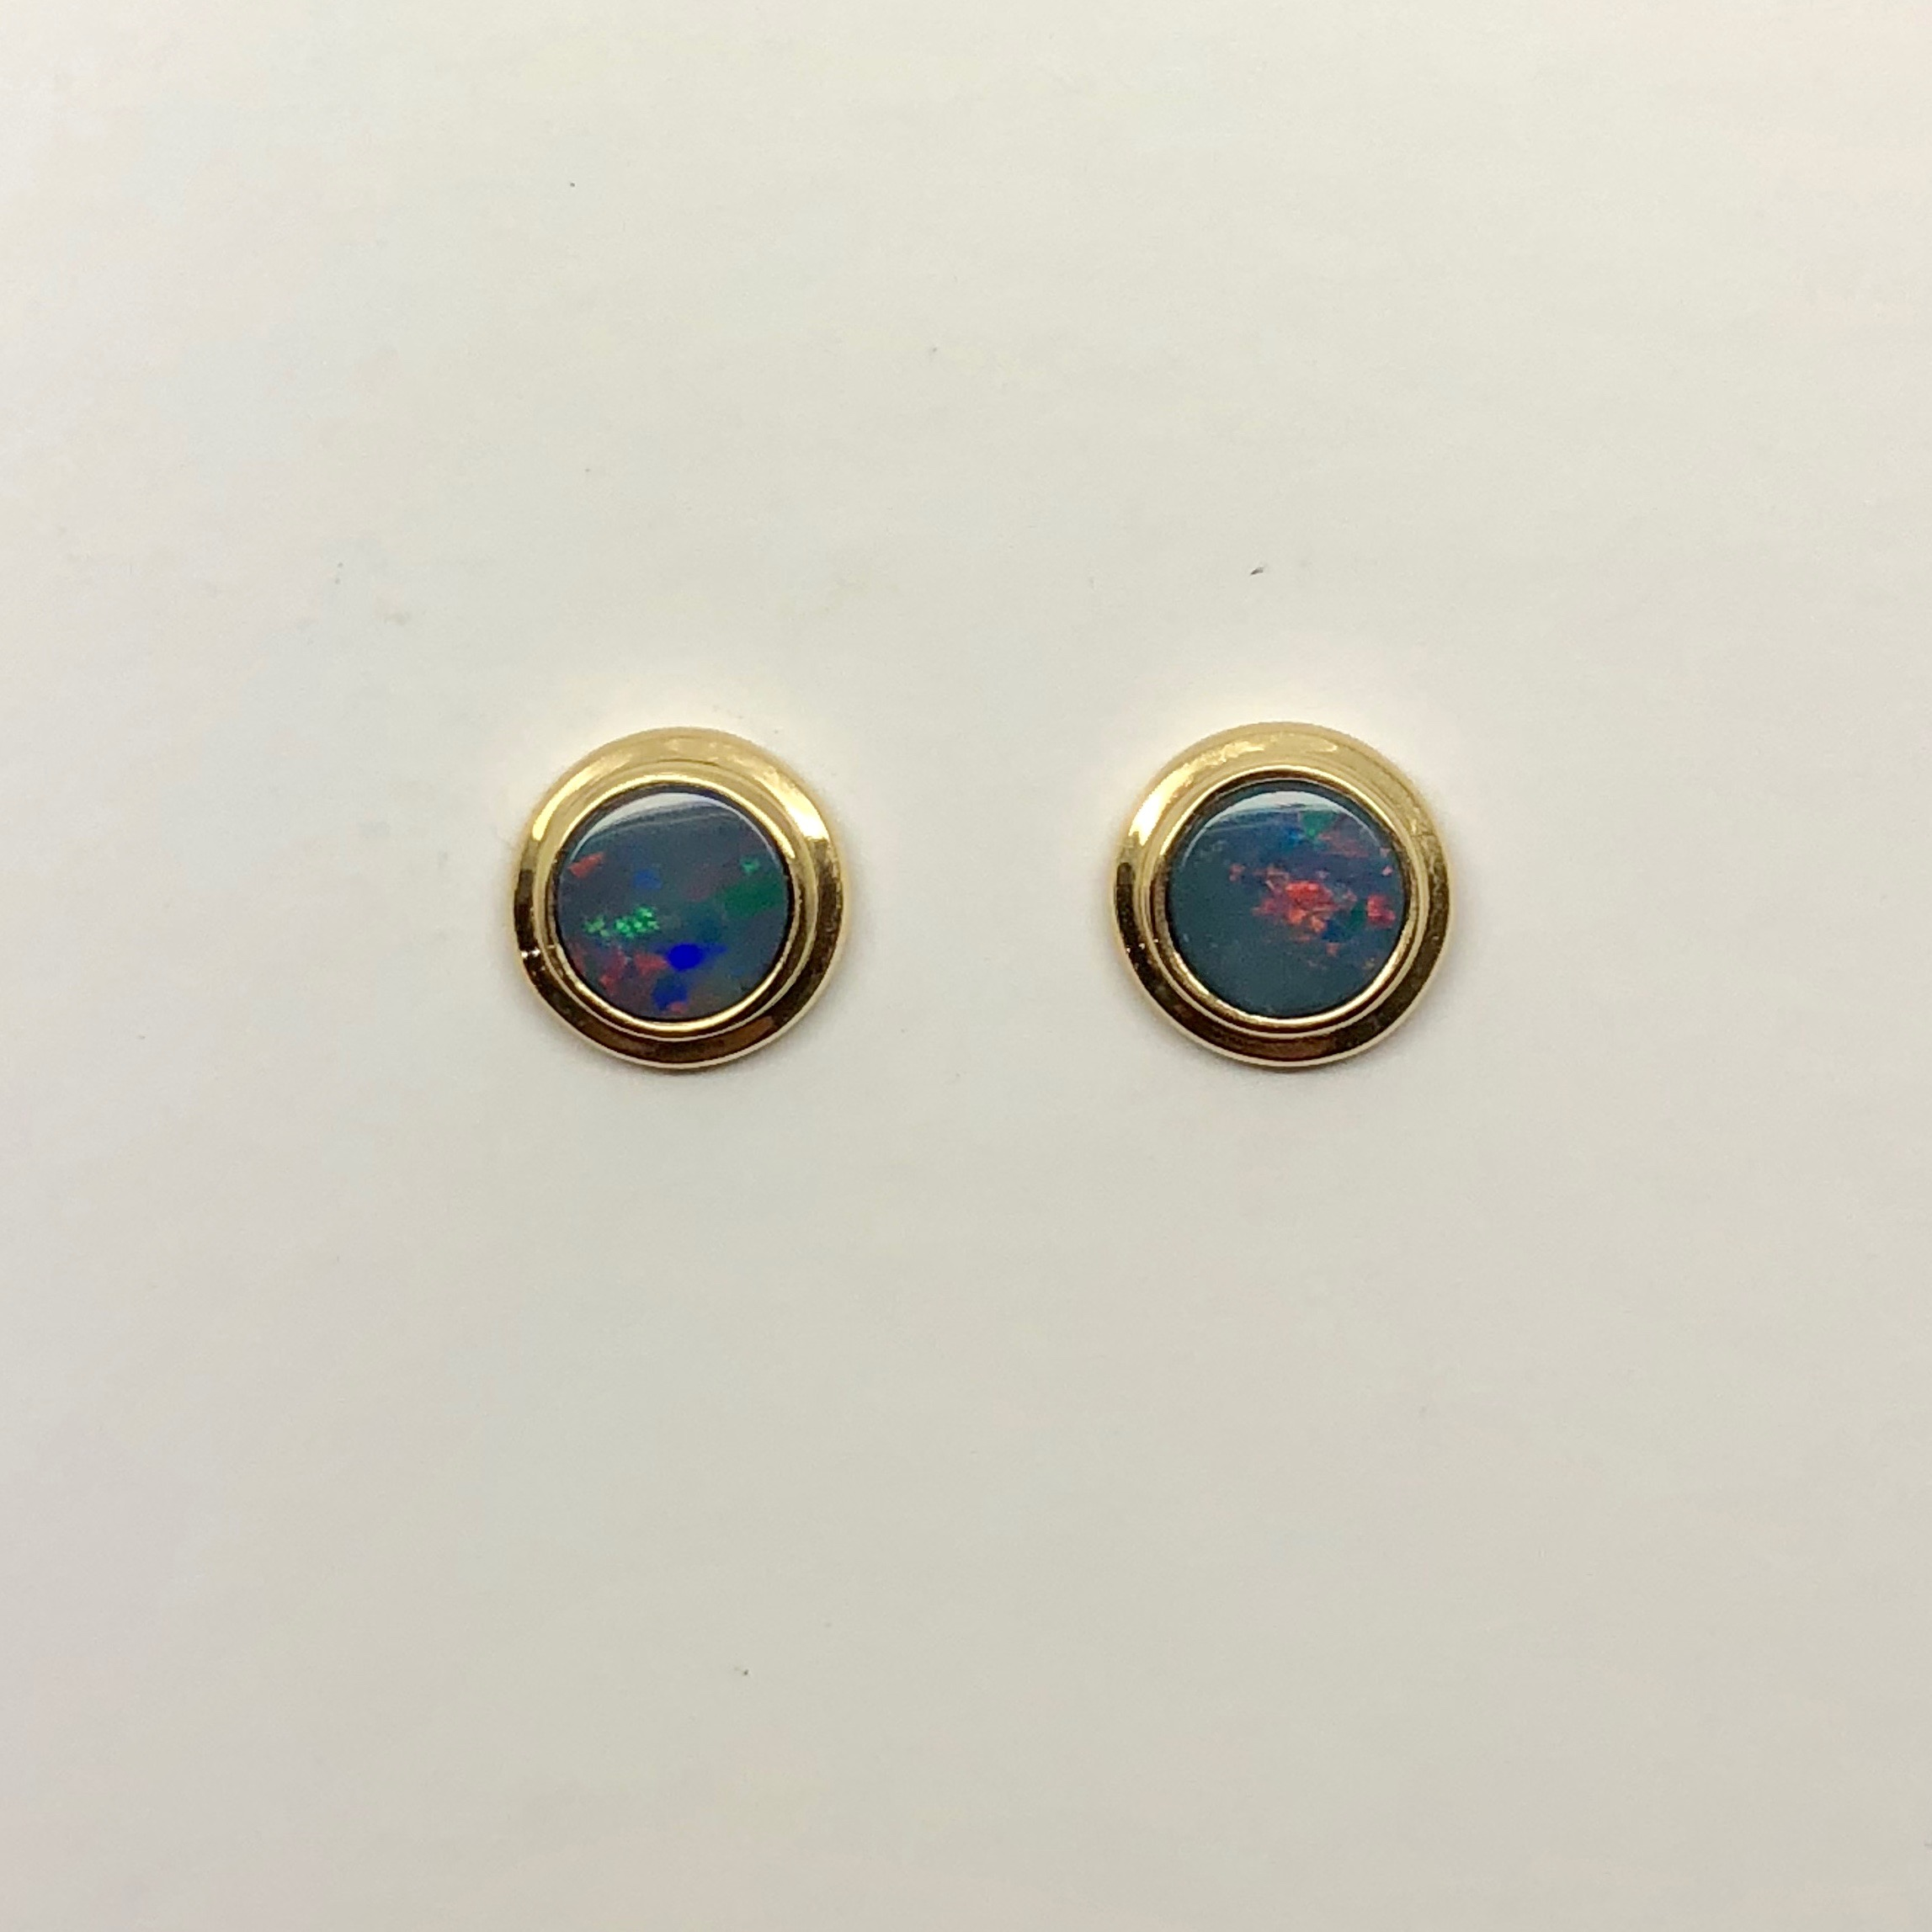 grown sterling jewelers product earrings lab faviore opal round stud s friedman